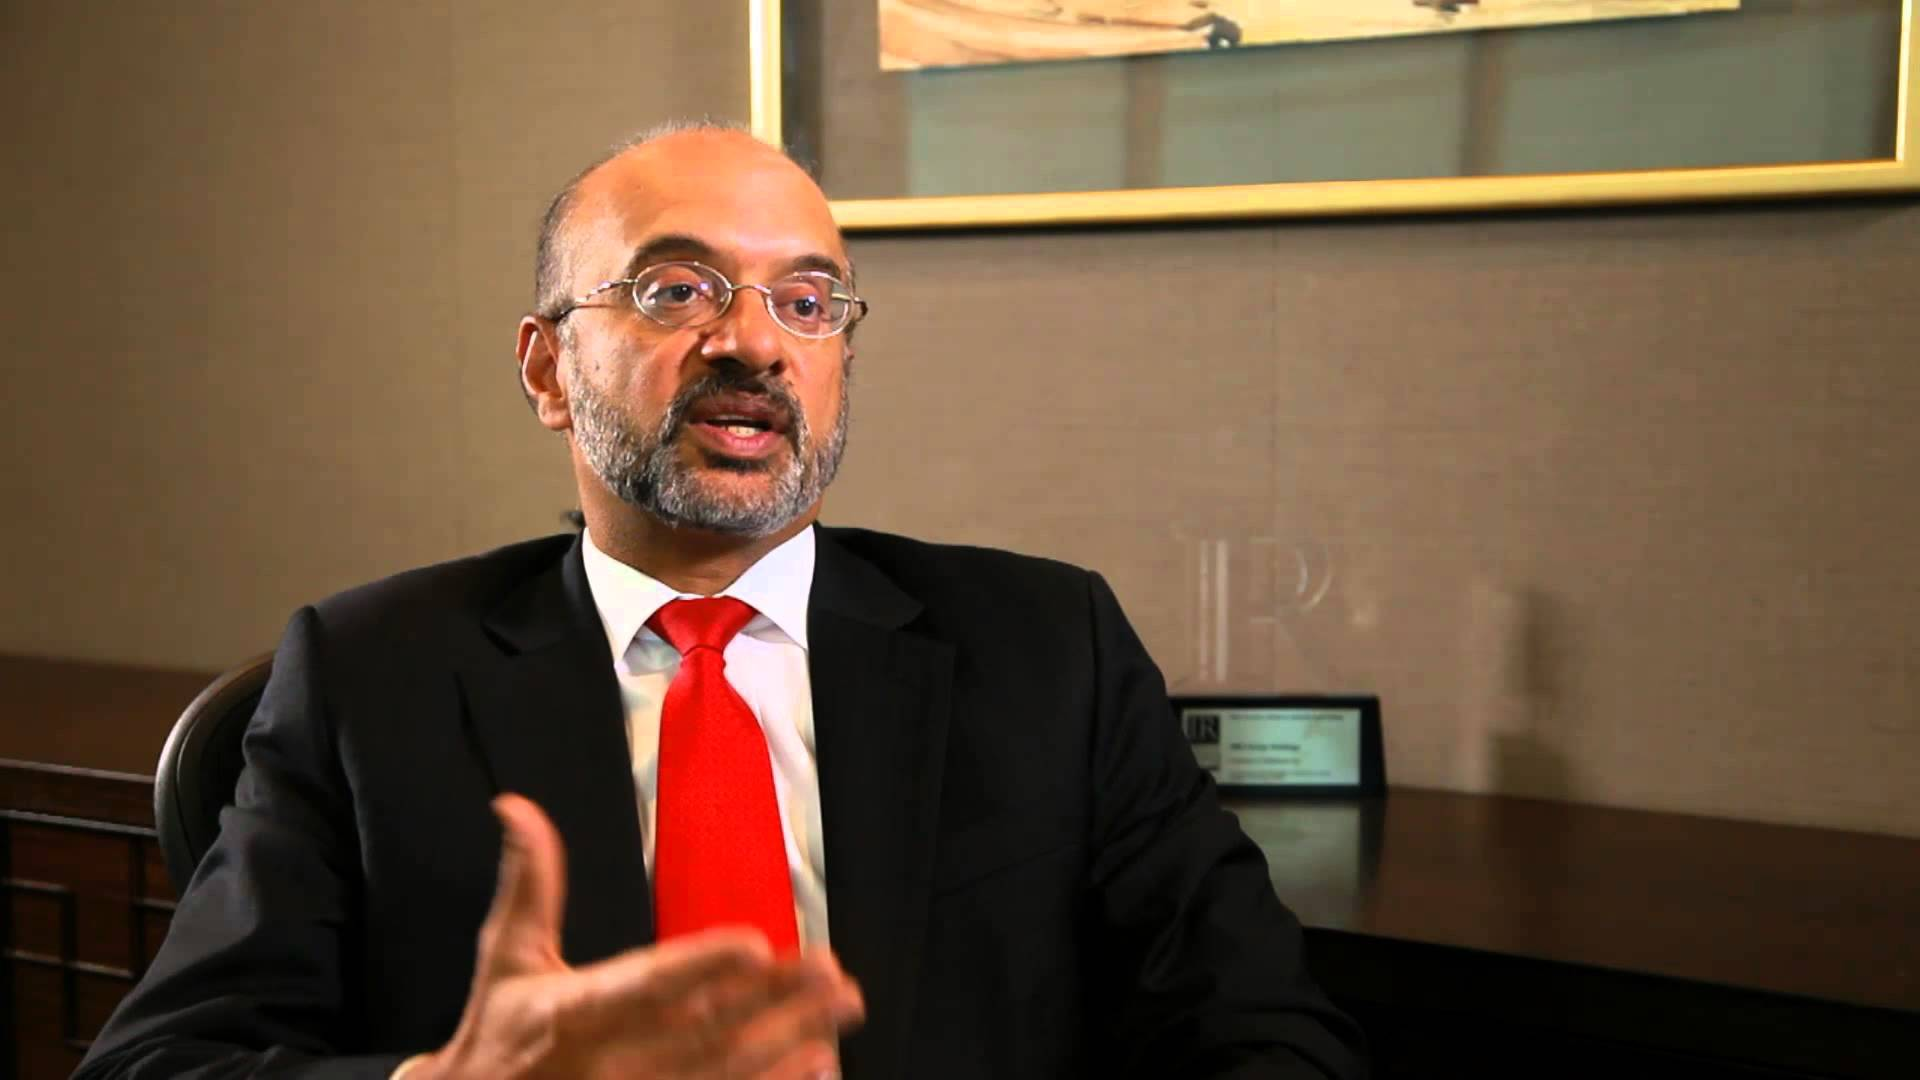 Piyush Gupta, Group CEO of DBS Group Holdings